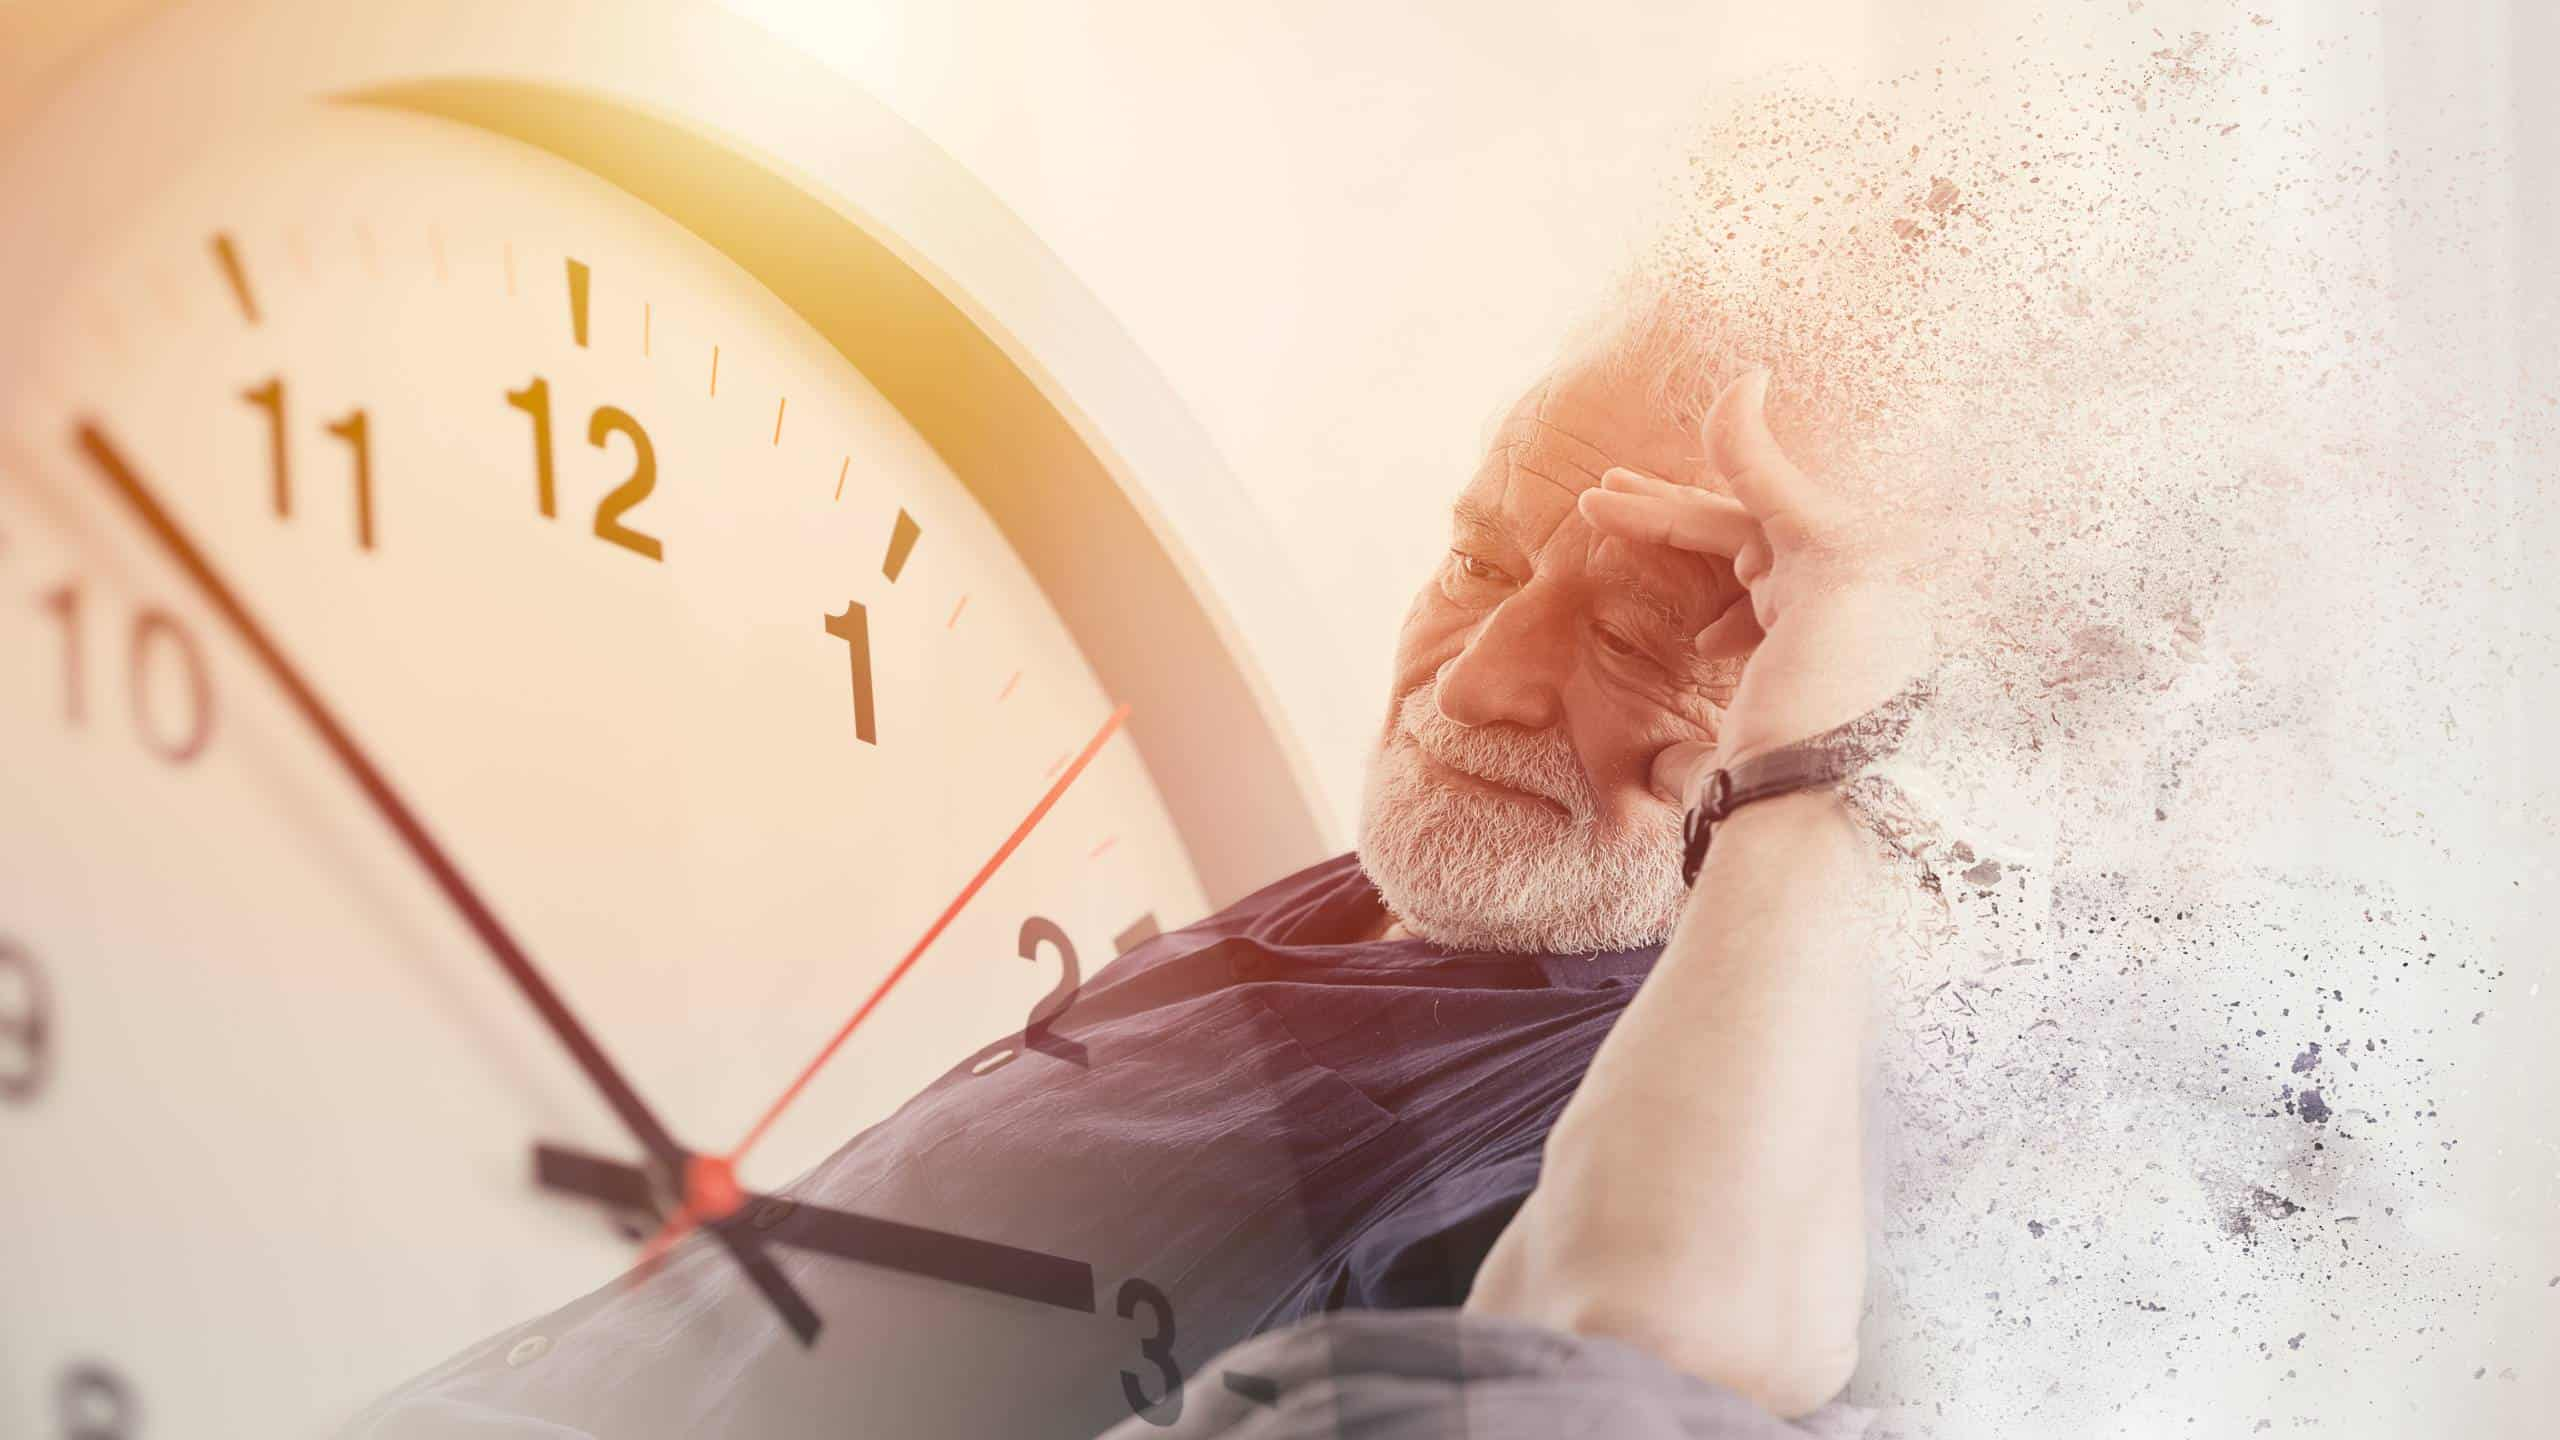 Elder time countdown to Alzheimer and Dementia disease loss their mild memory and family life concept.